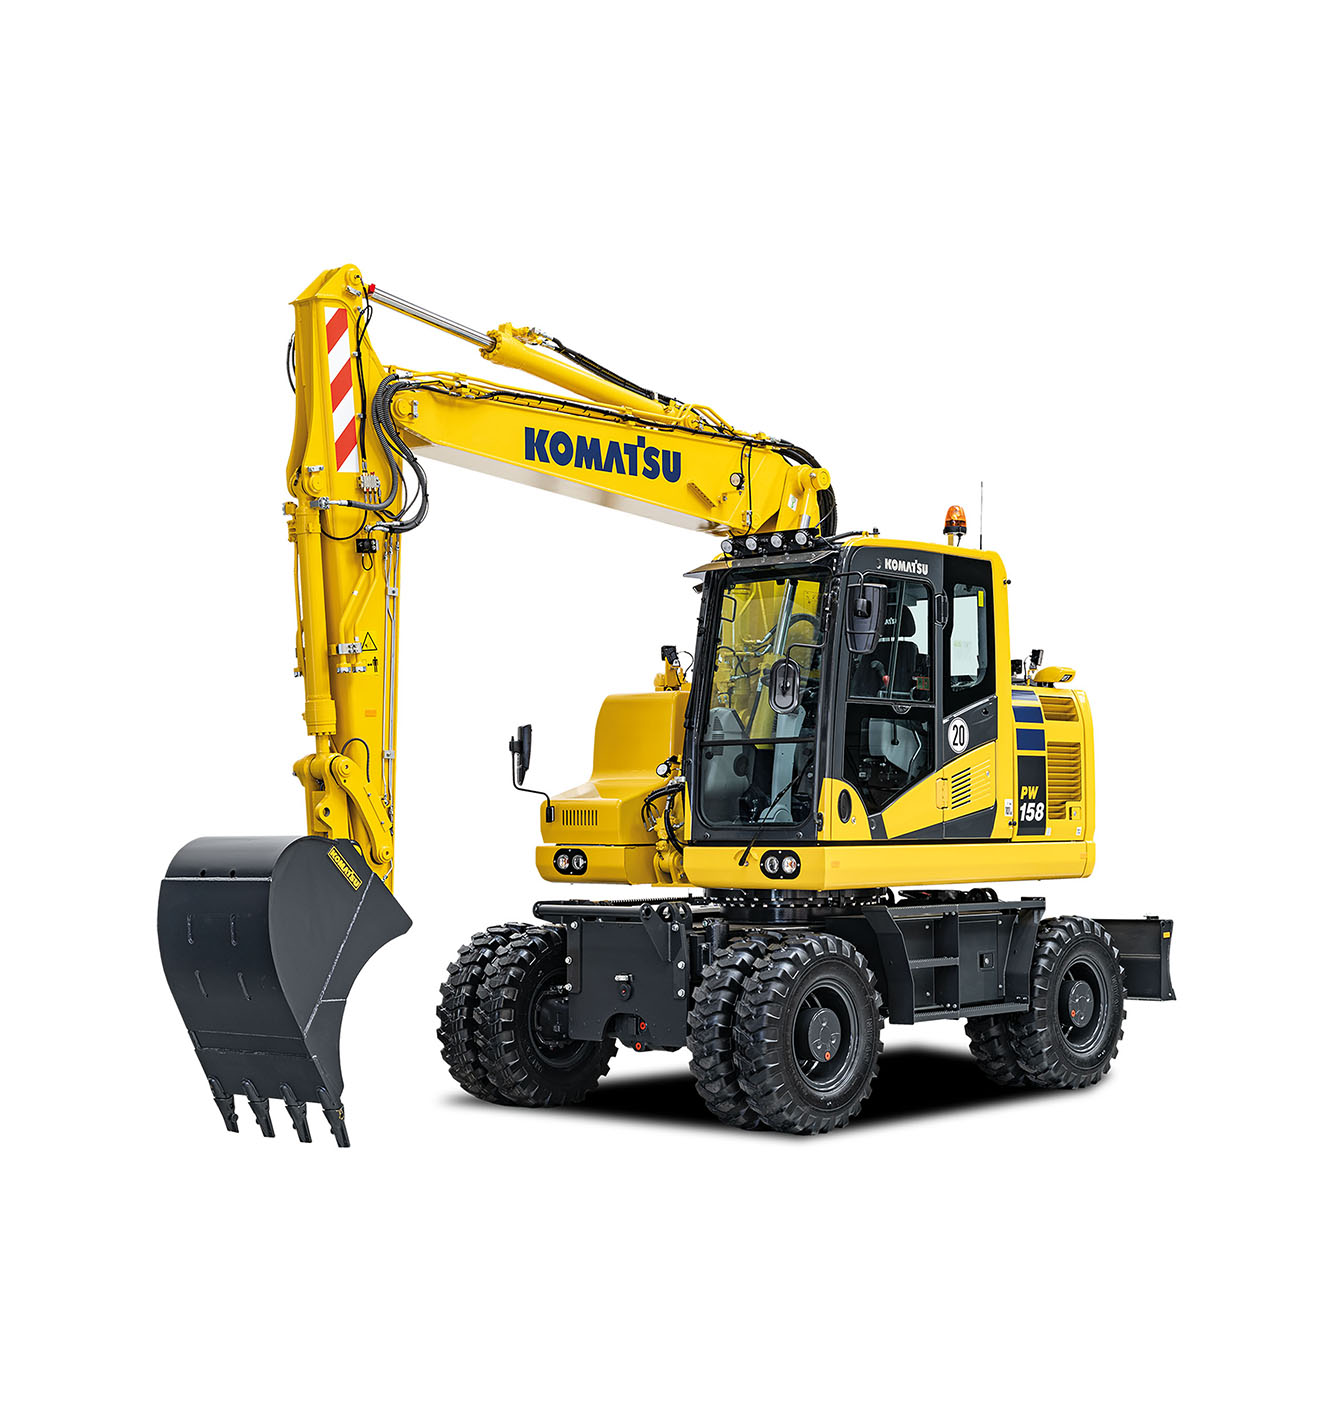 Komatsu Europe Introduces new PW158-11 Wheeled Excavator